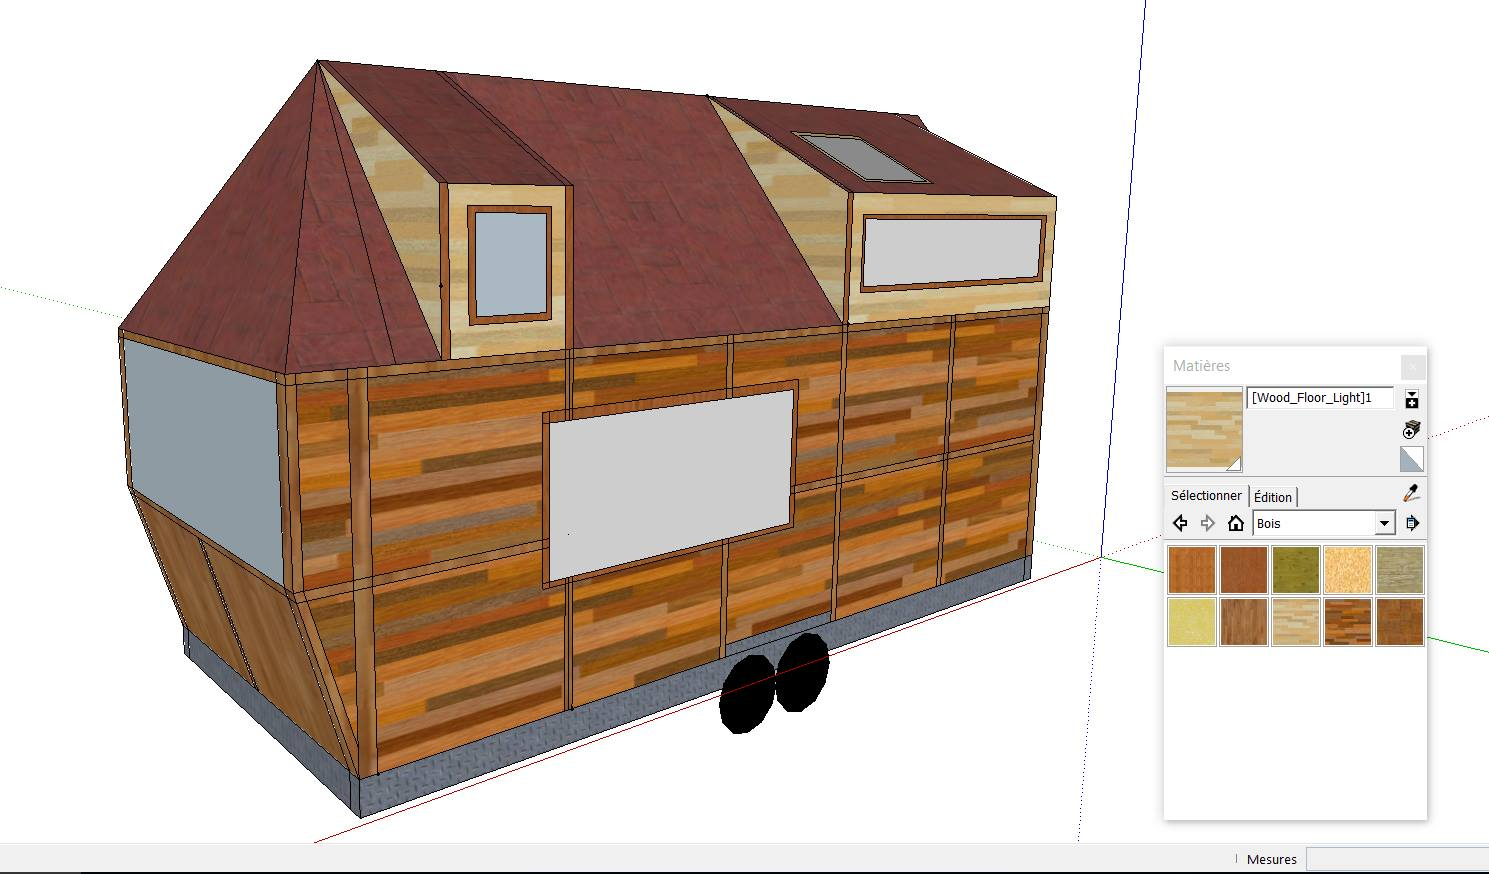 Un d fi jeune construire une tiny house tiny house for Construire sa tiny house